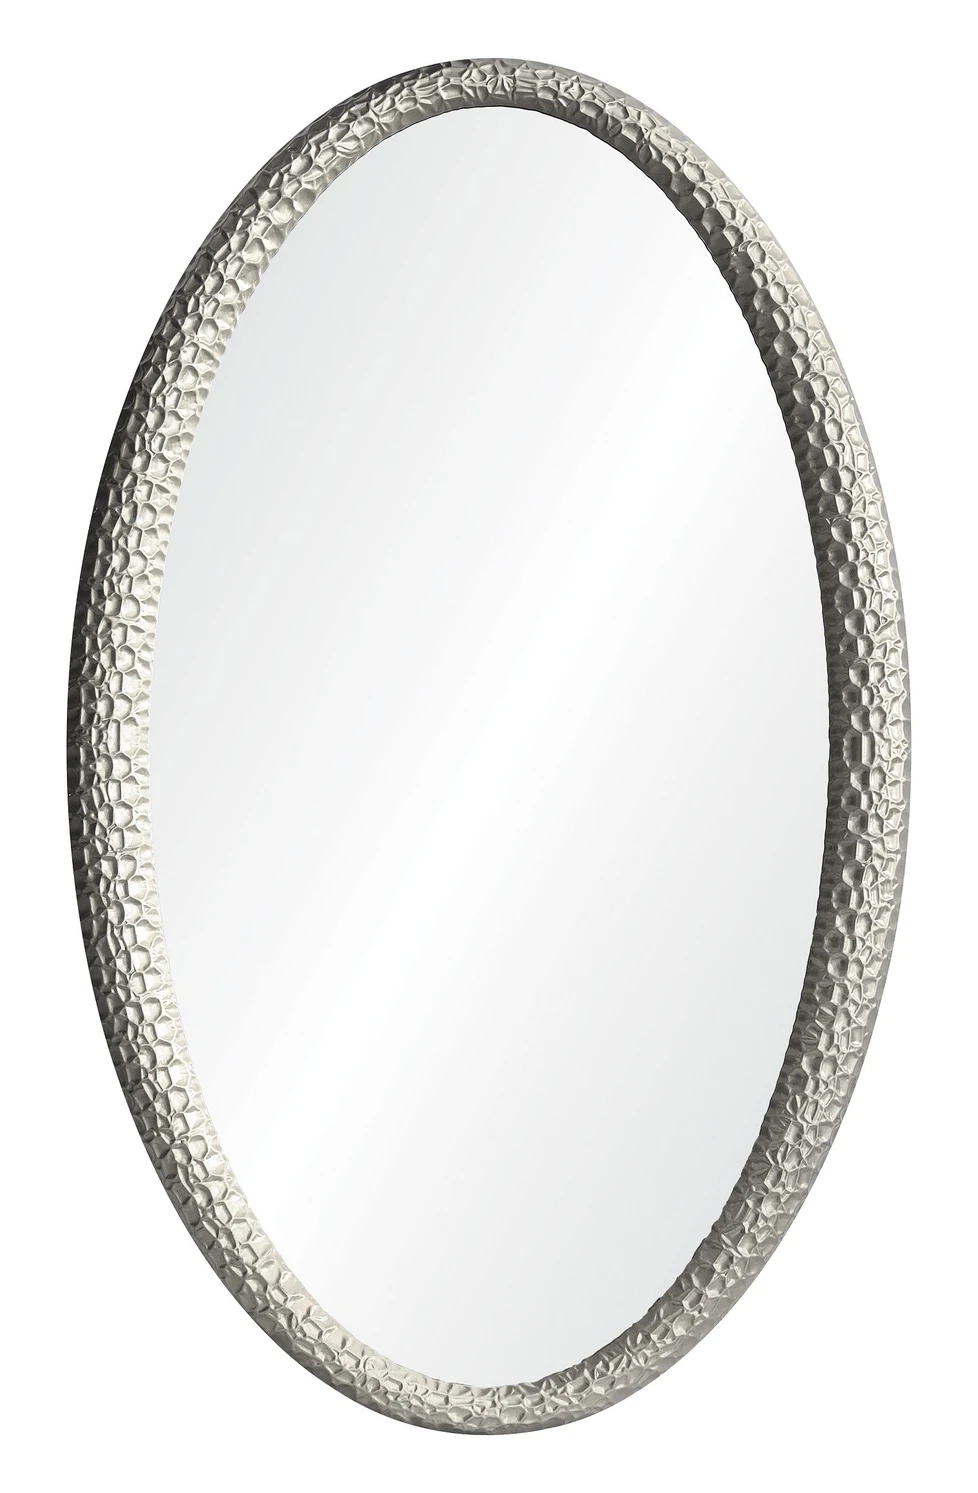 Jamie Drake Carved Oval Mirror Silver Leaf In 2020 Oval Mirror